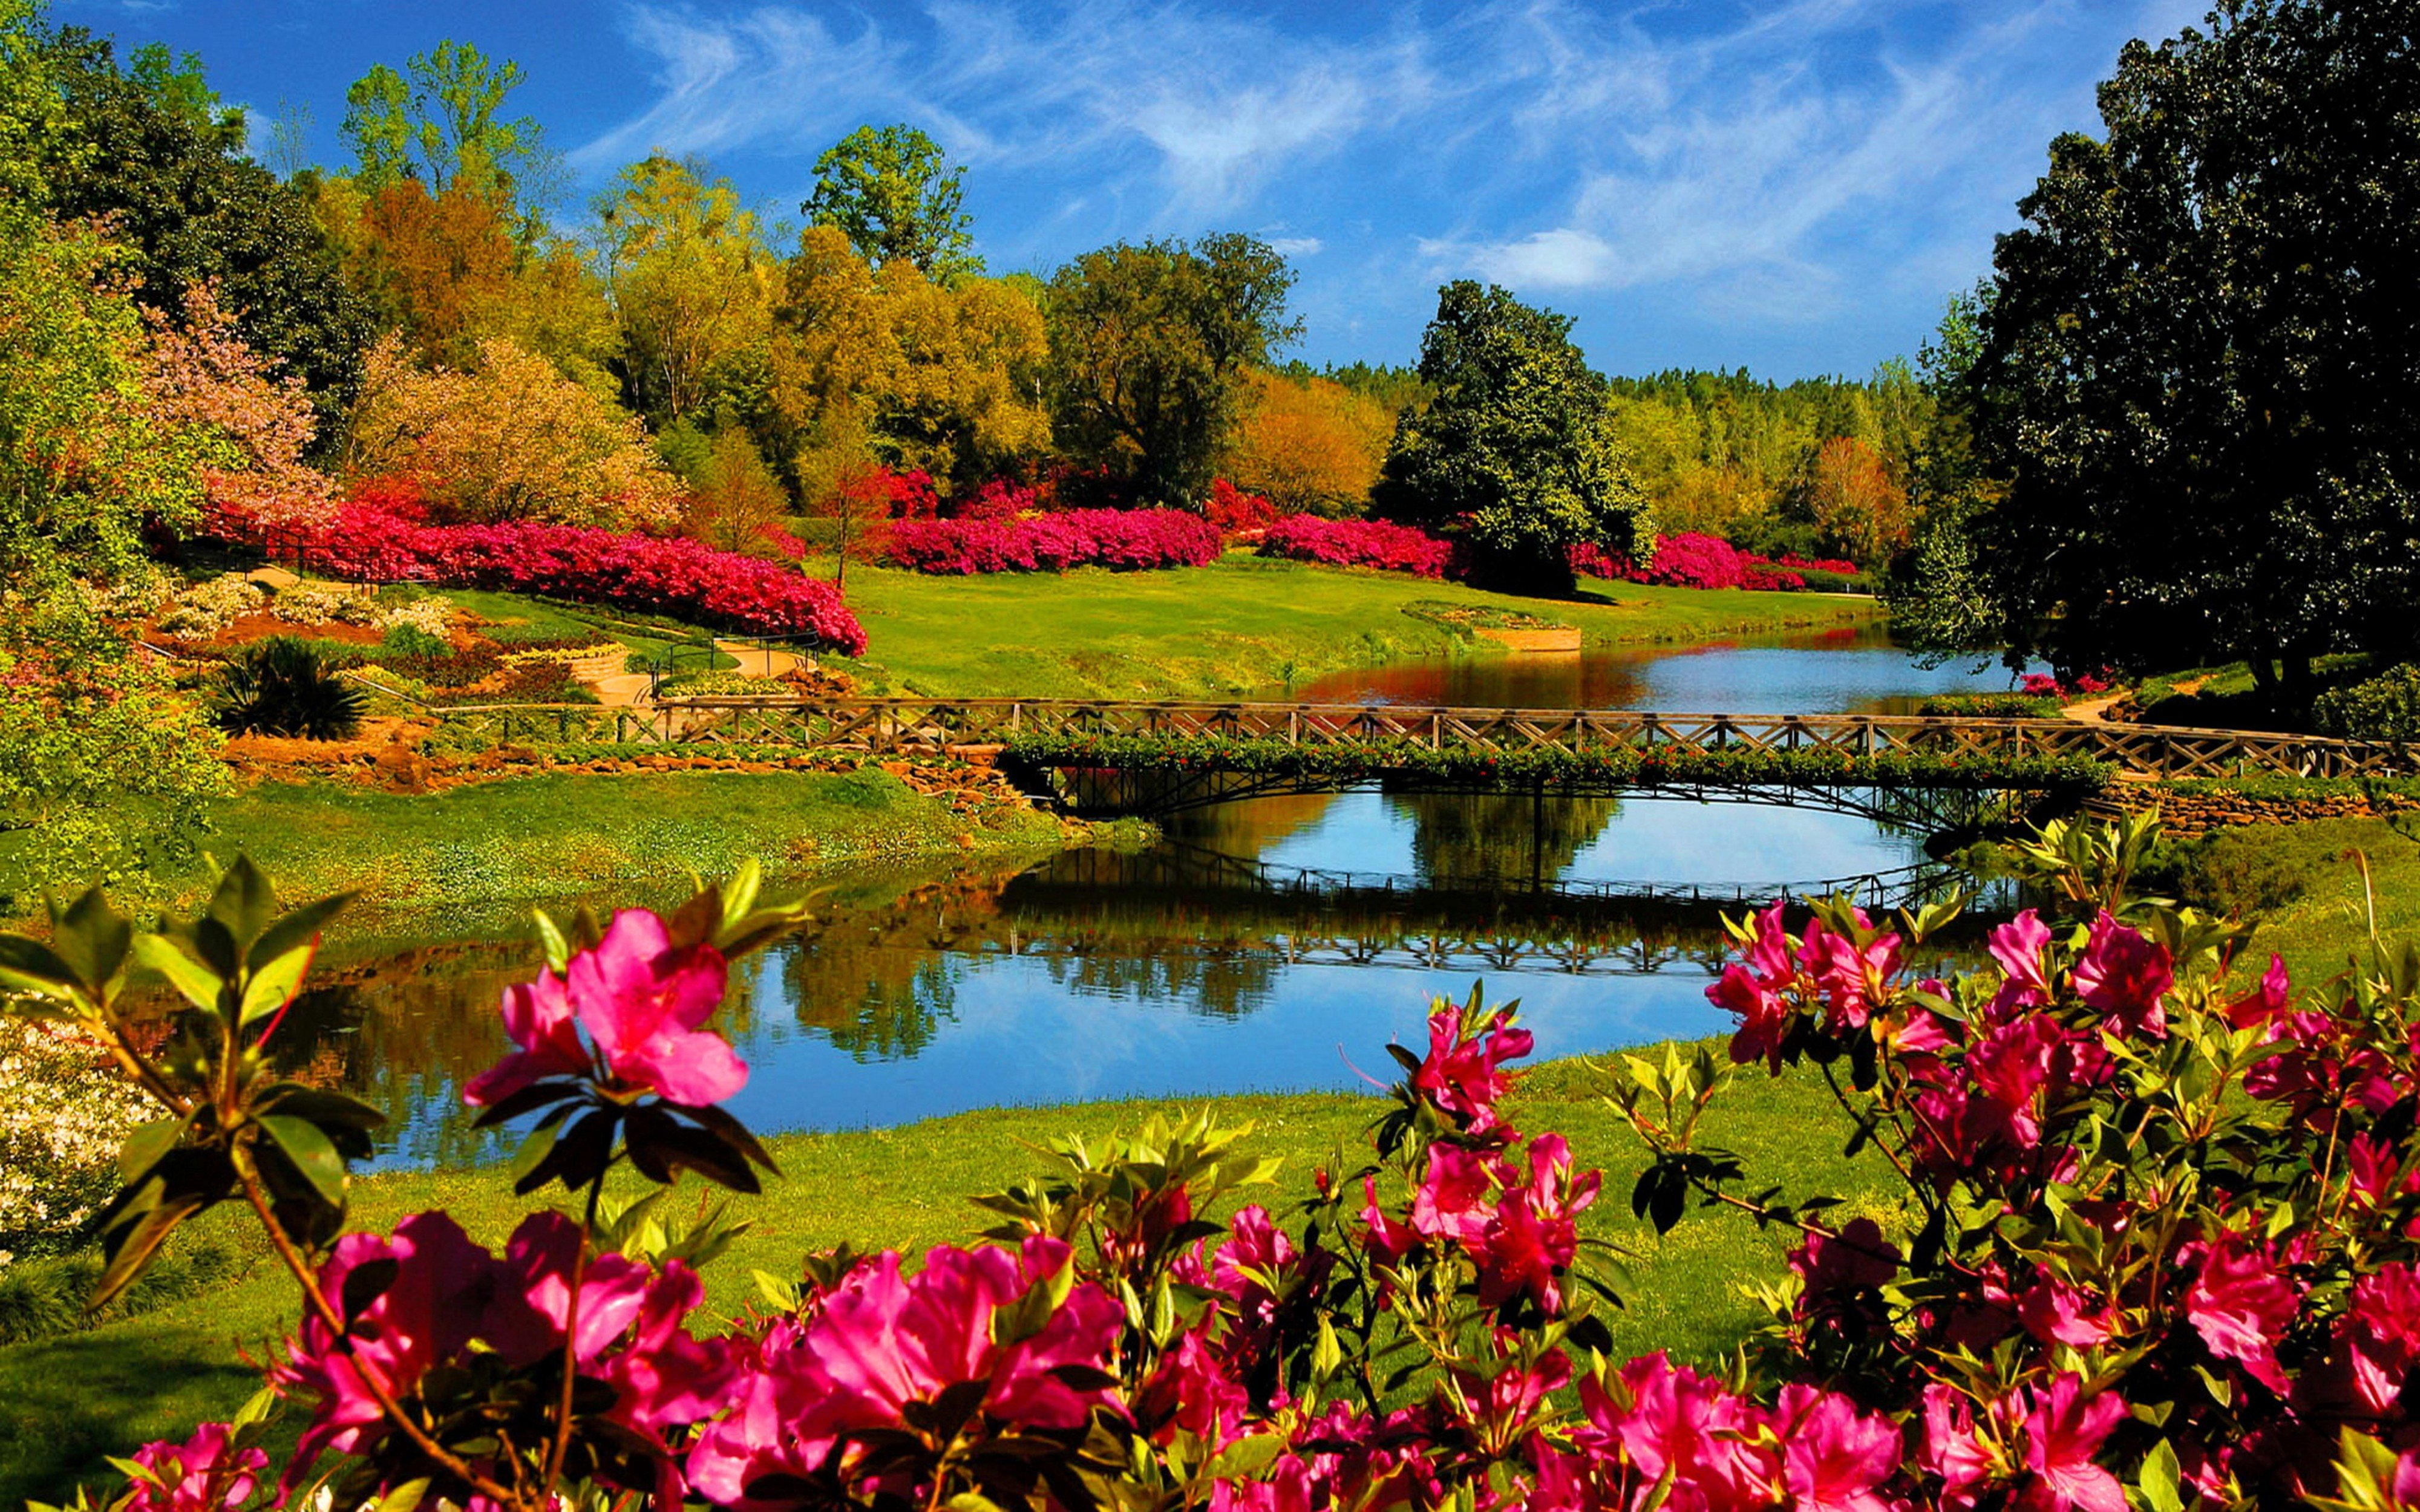 Flower lake landscape 4000x2500 wallpaper 4000x2500 344471 4000x2500